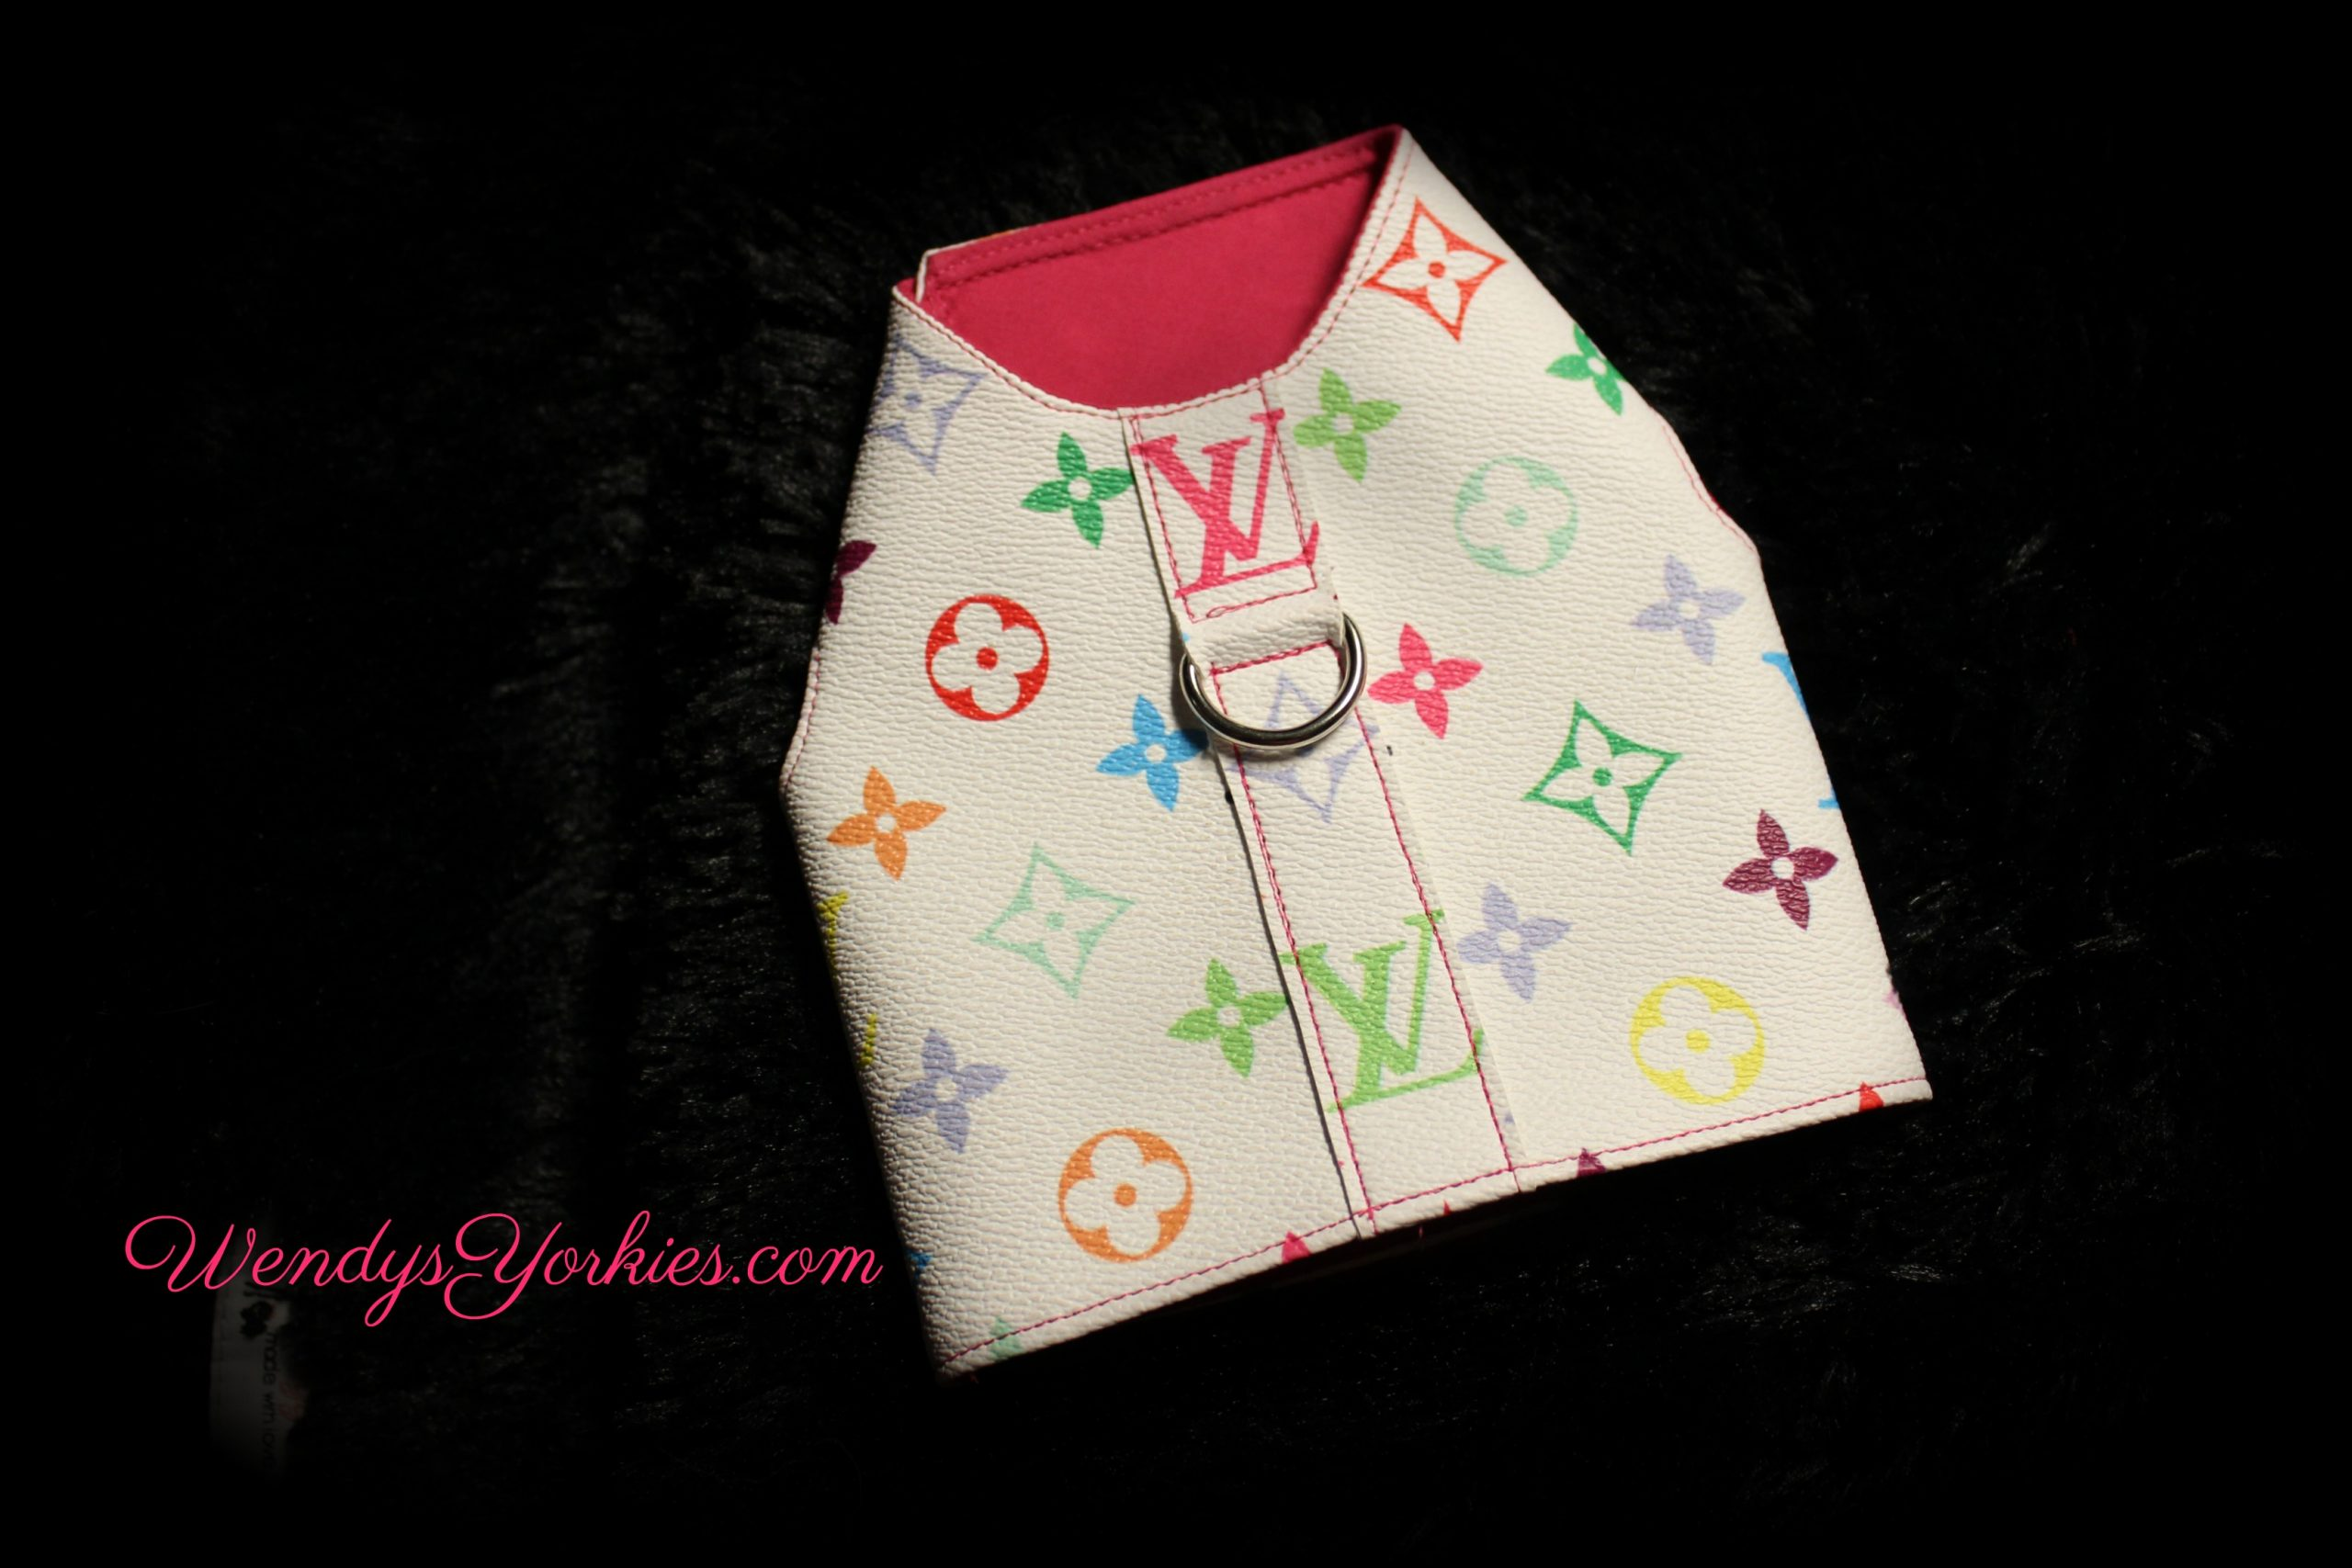 Designer Dog harness, WendysYorkies.com